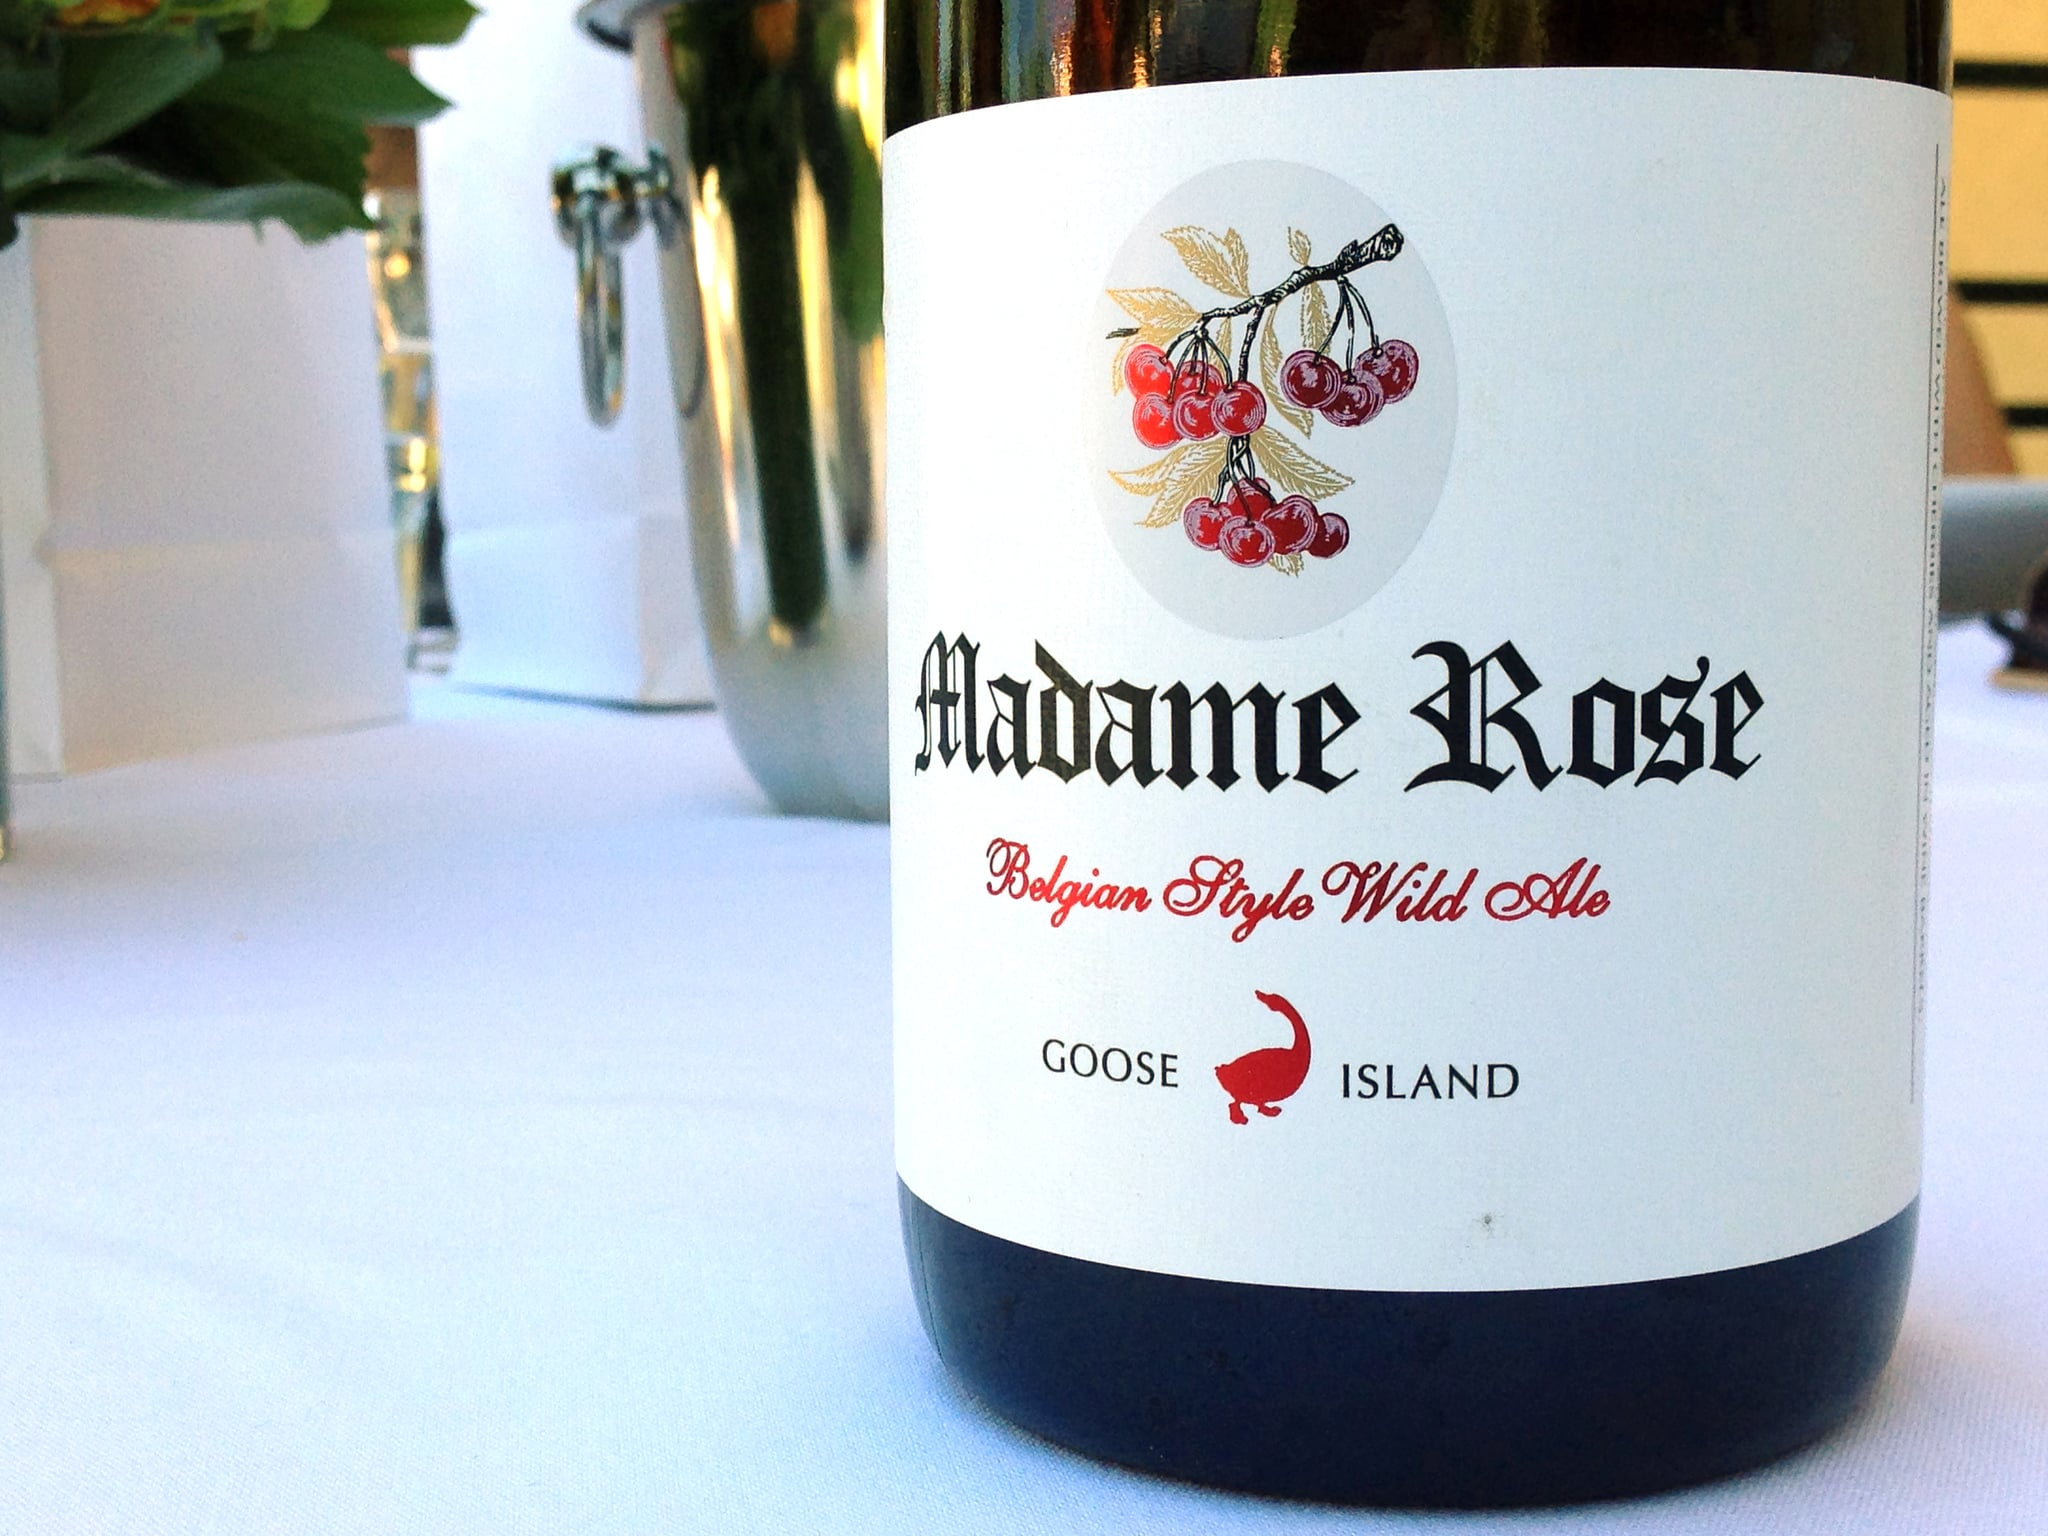 Goose Island Madame Rose Belgian Style Wild Ale